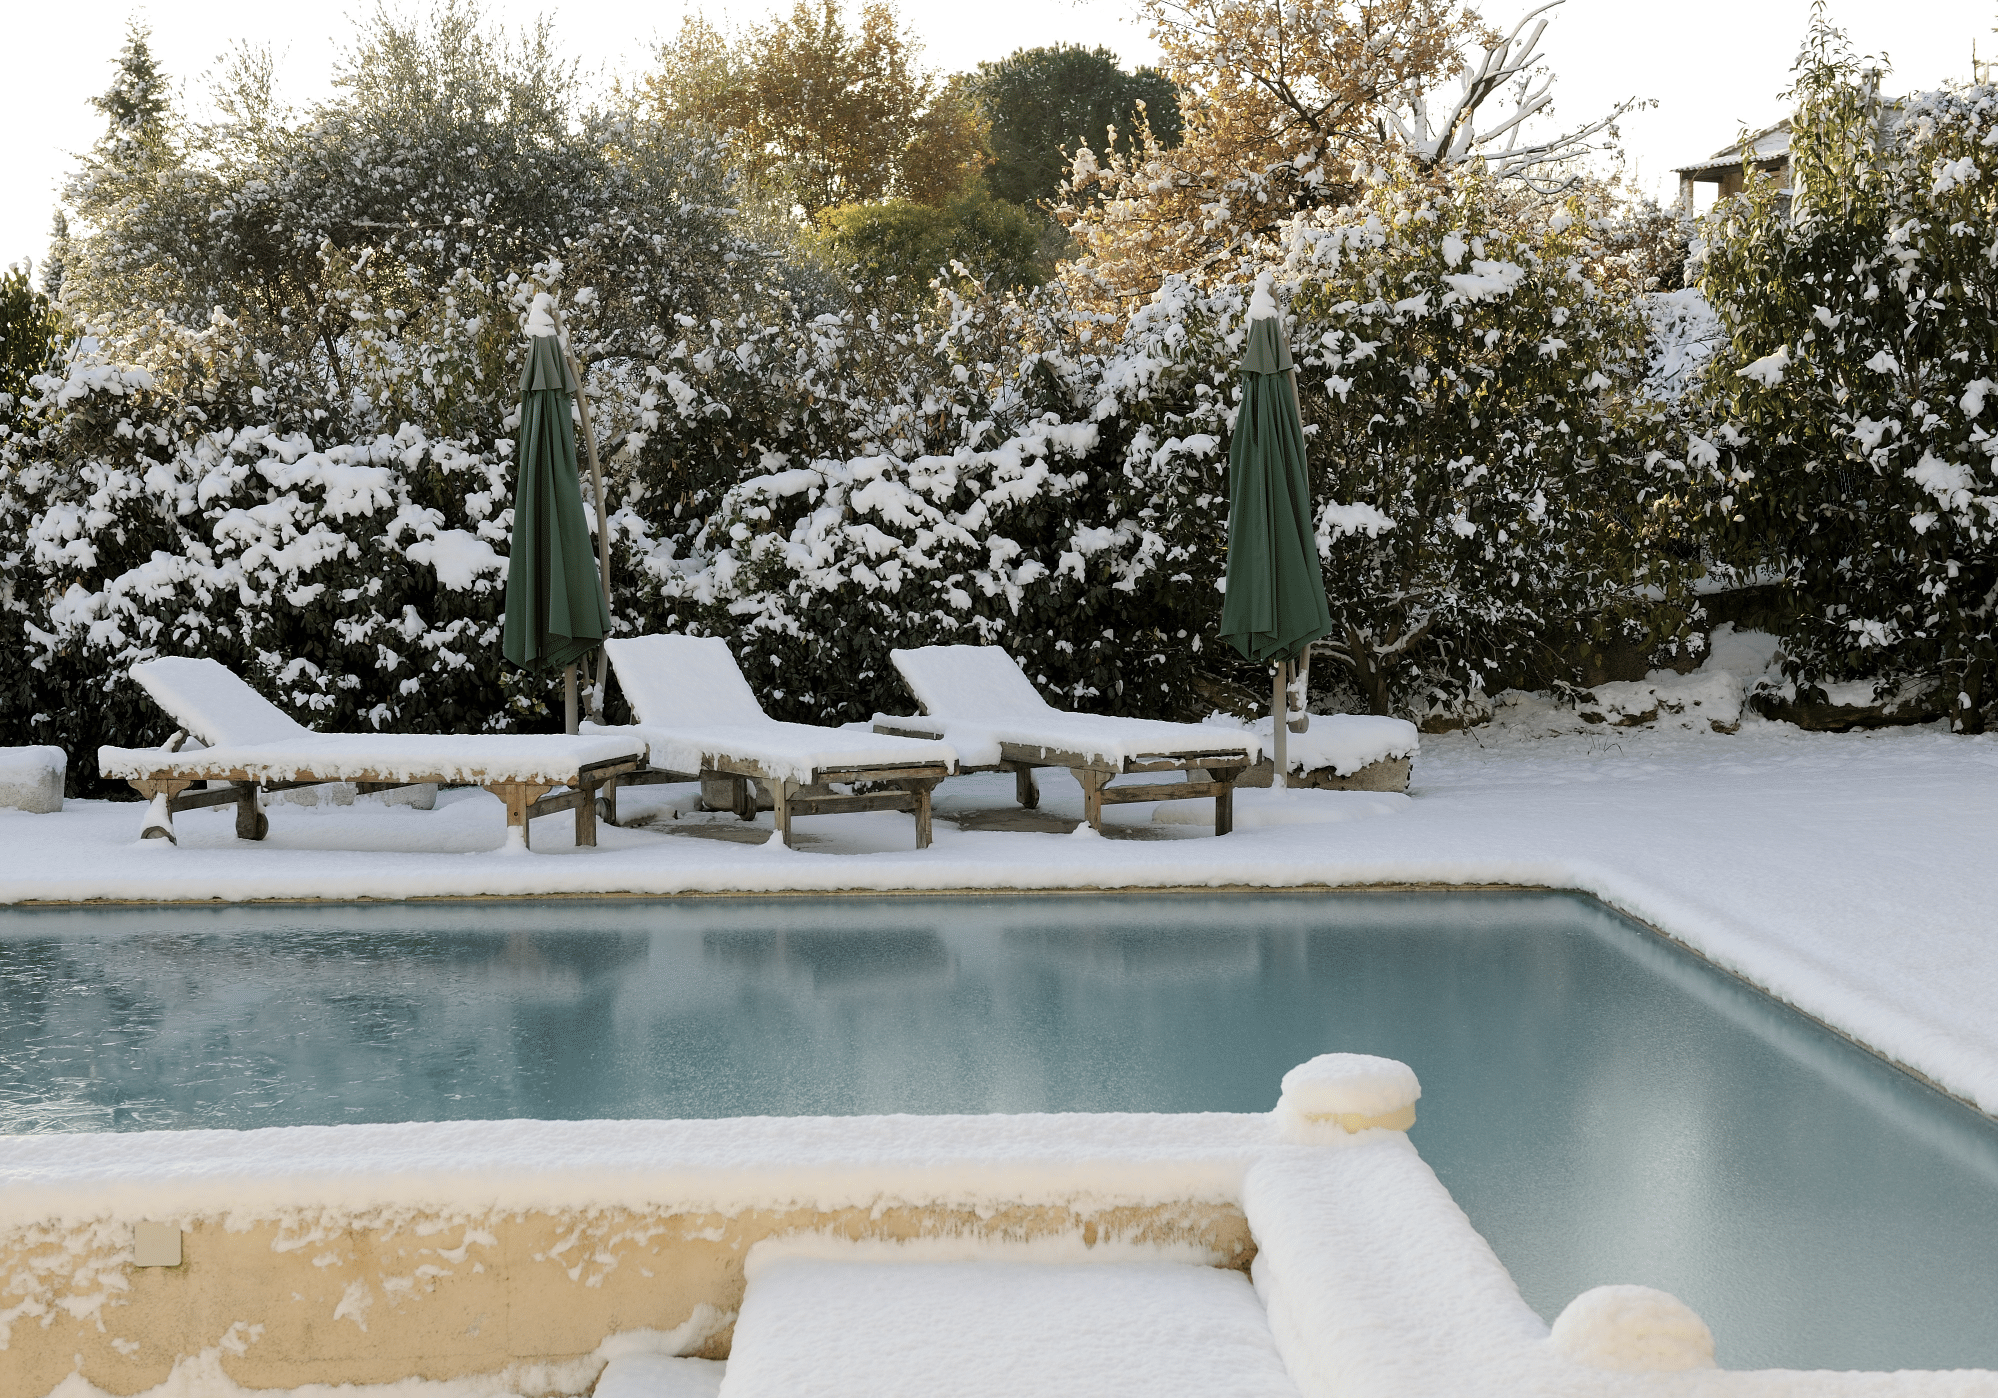 How to Winterize a Swimming Pool